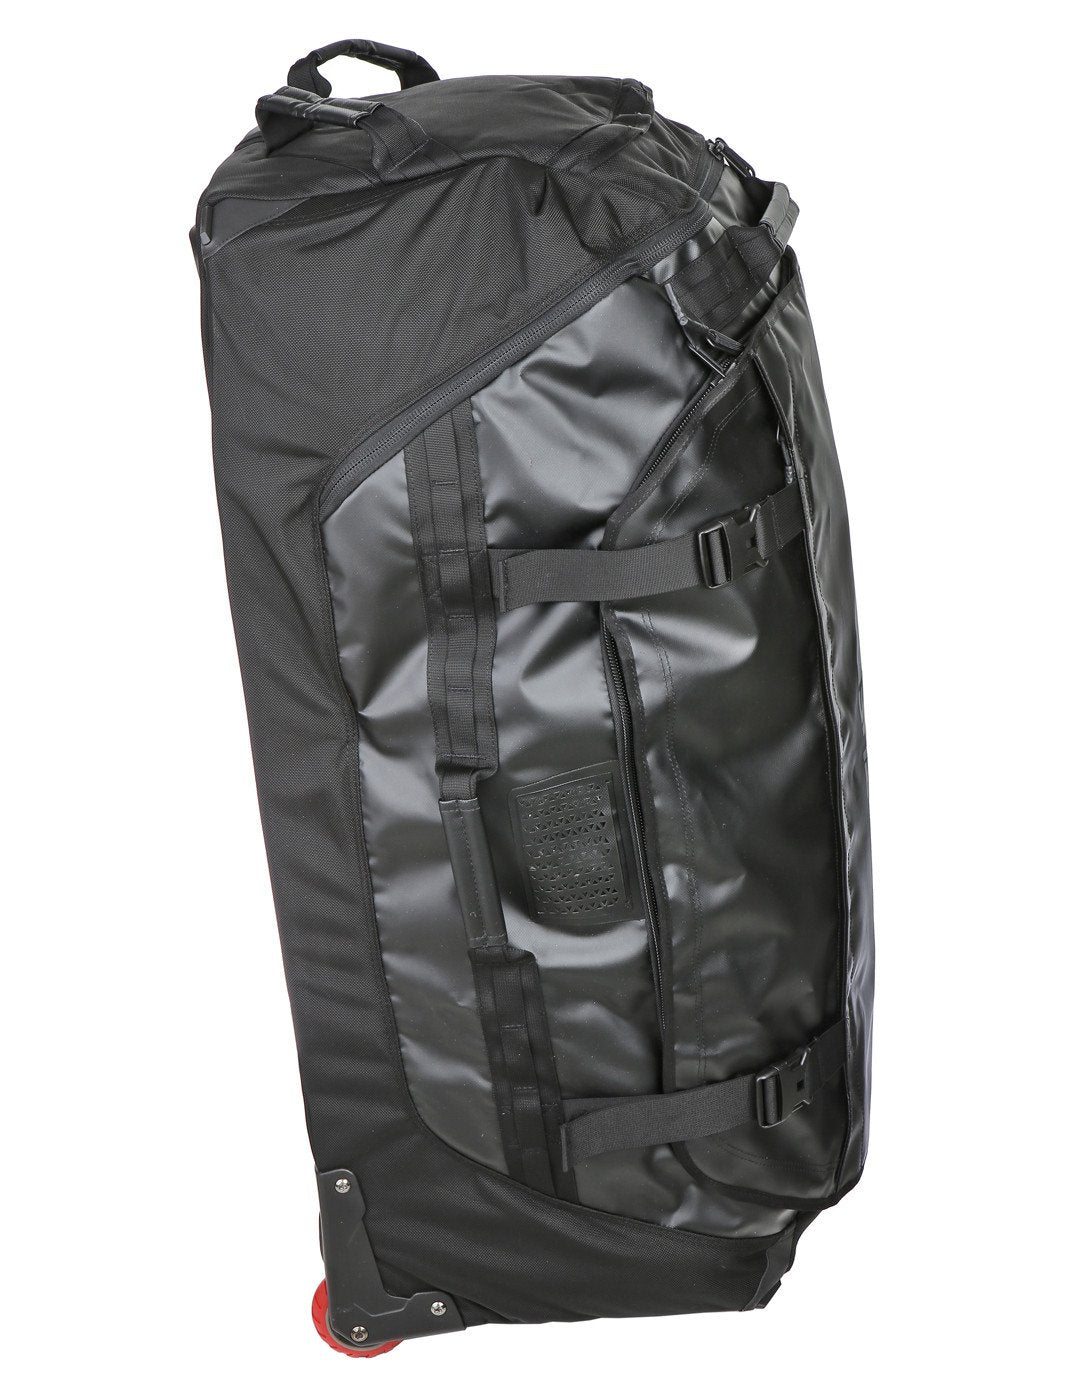 97864b7c76 ... The North Face Rolling Thunder 36 Inch Luggage ...